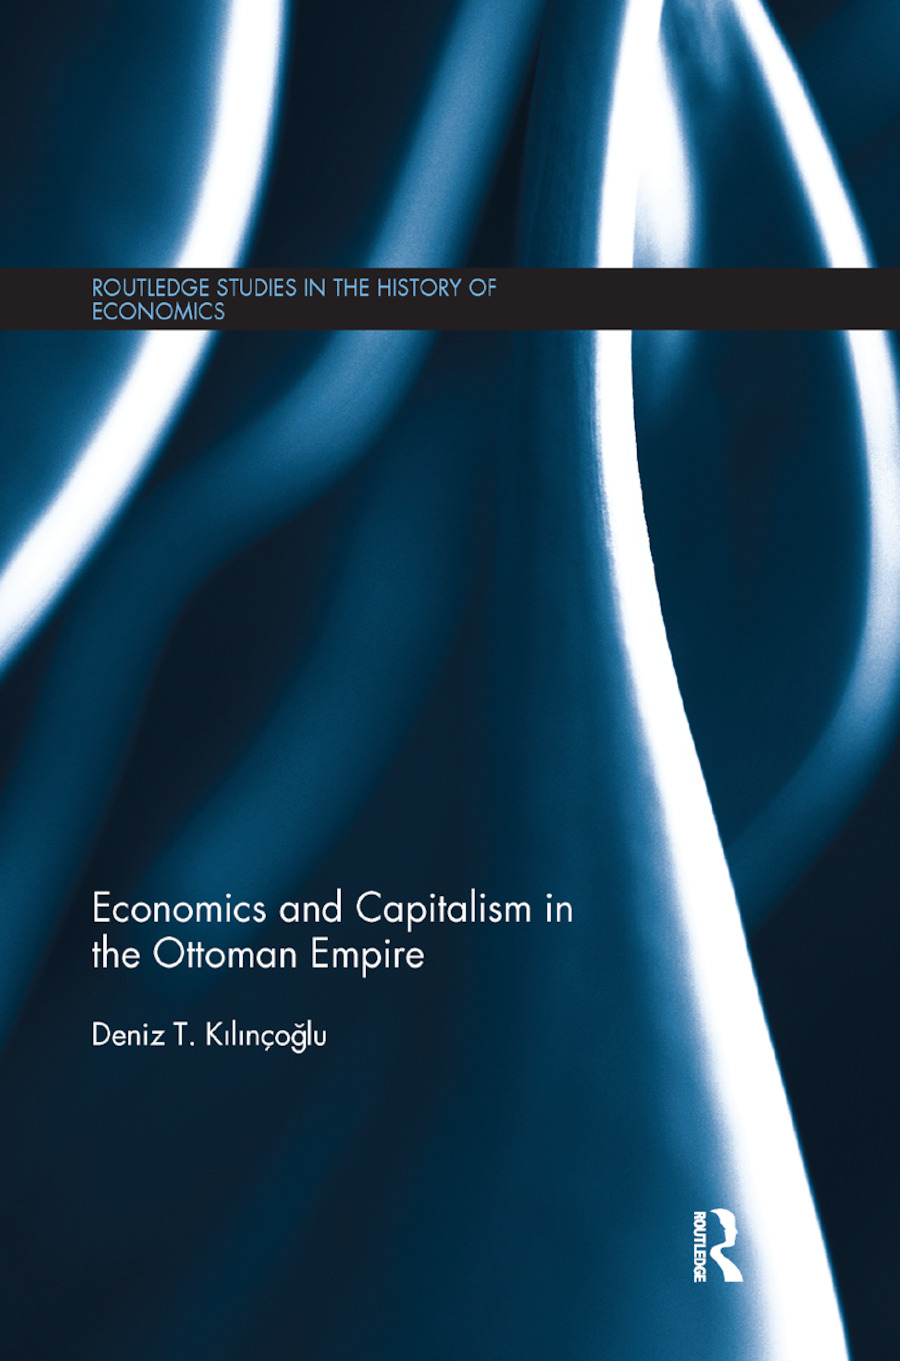 Economics and Capitalism in the Ottoman Empire: 1st Edition (Paperback) book cover